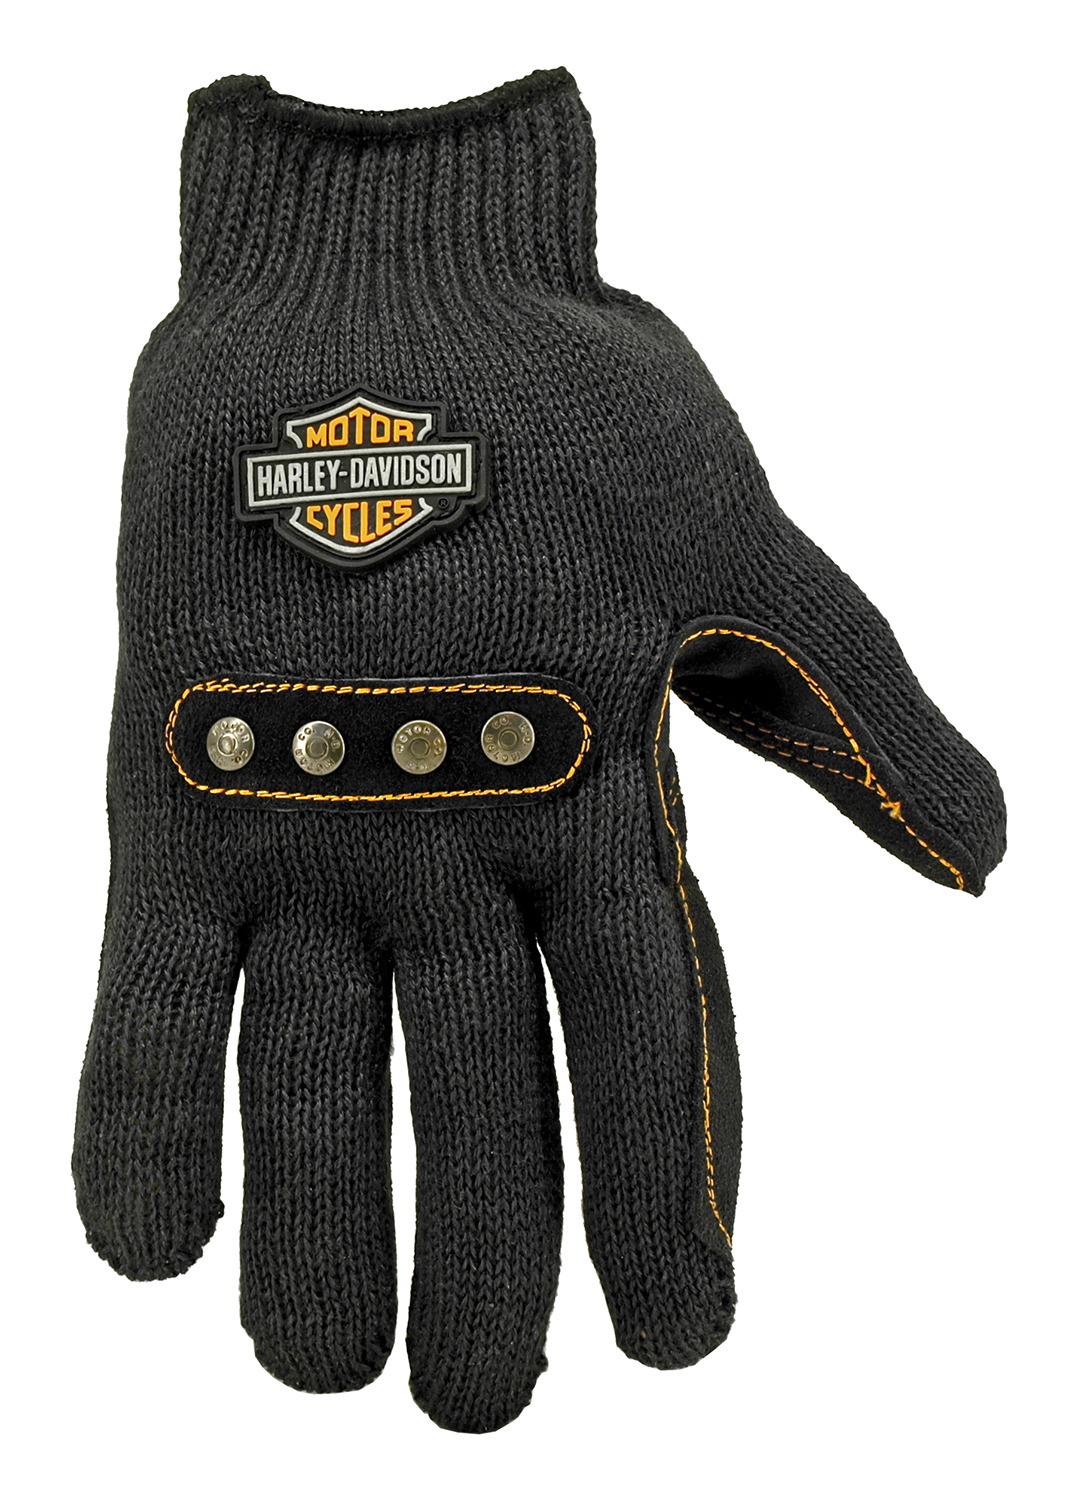 Harley Davidson Kevlar Leather Palm Gloves - Pair